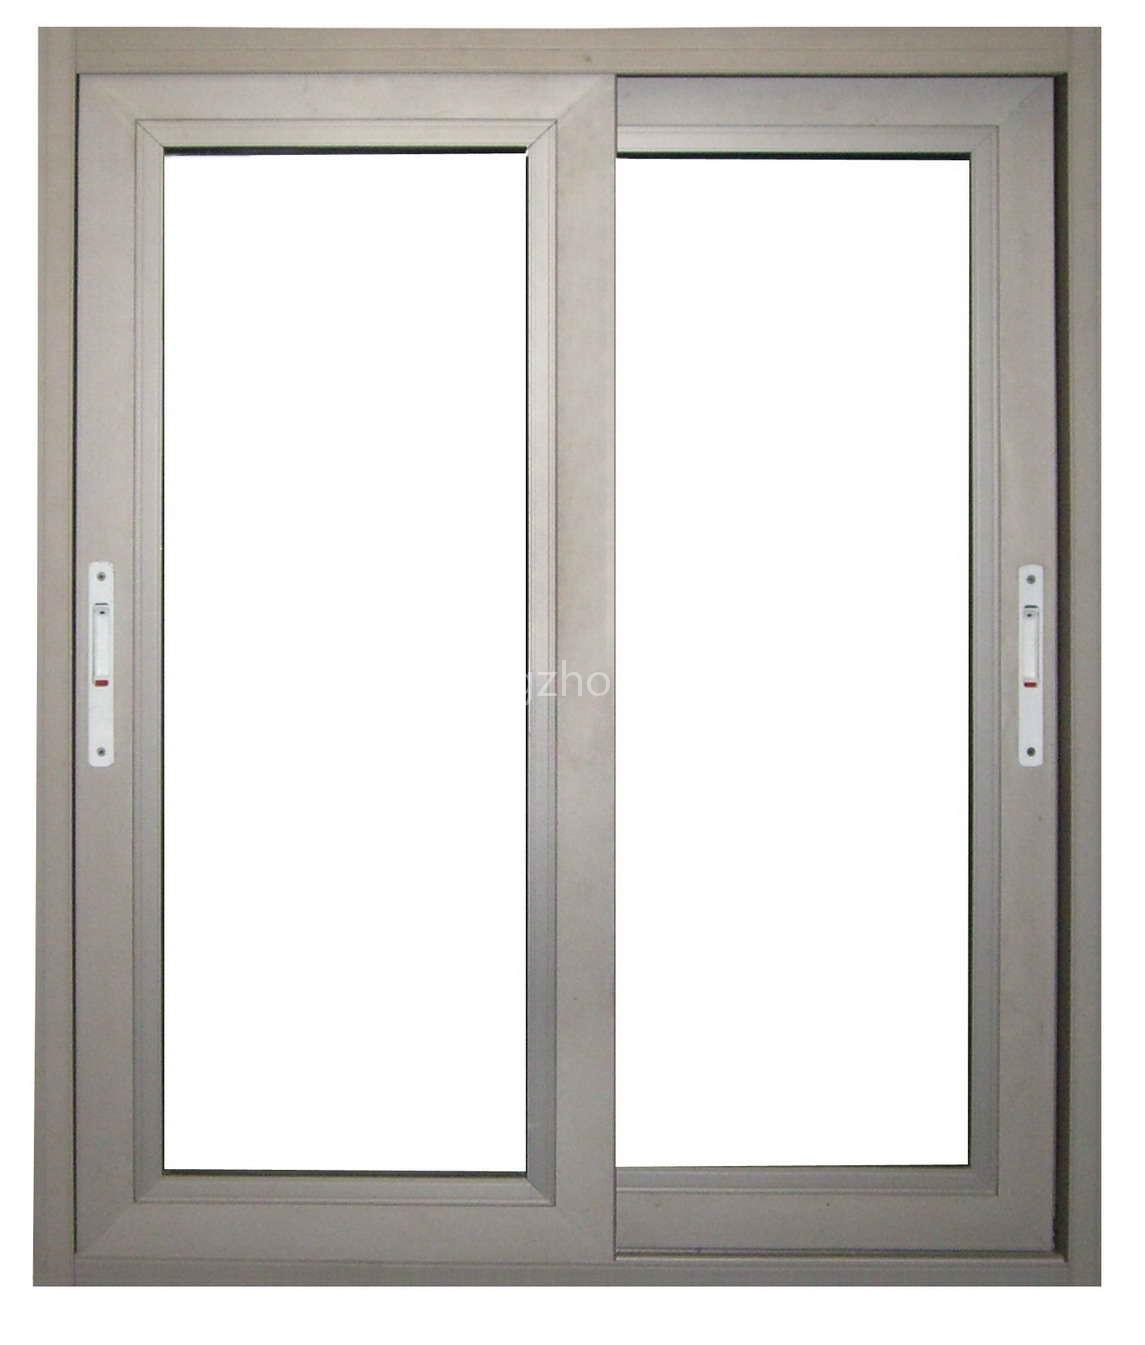 Aluminum Frame Sliding Windows 1145 x 1345